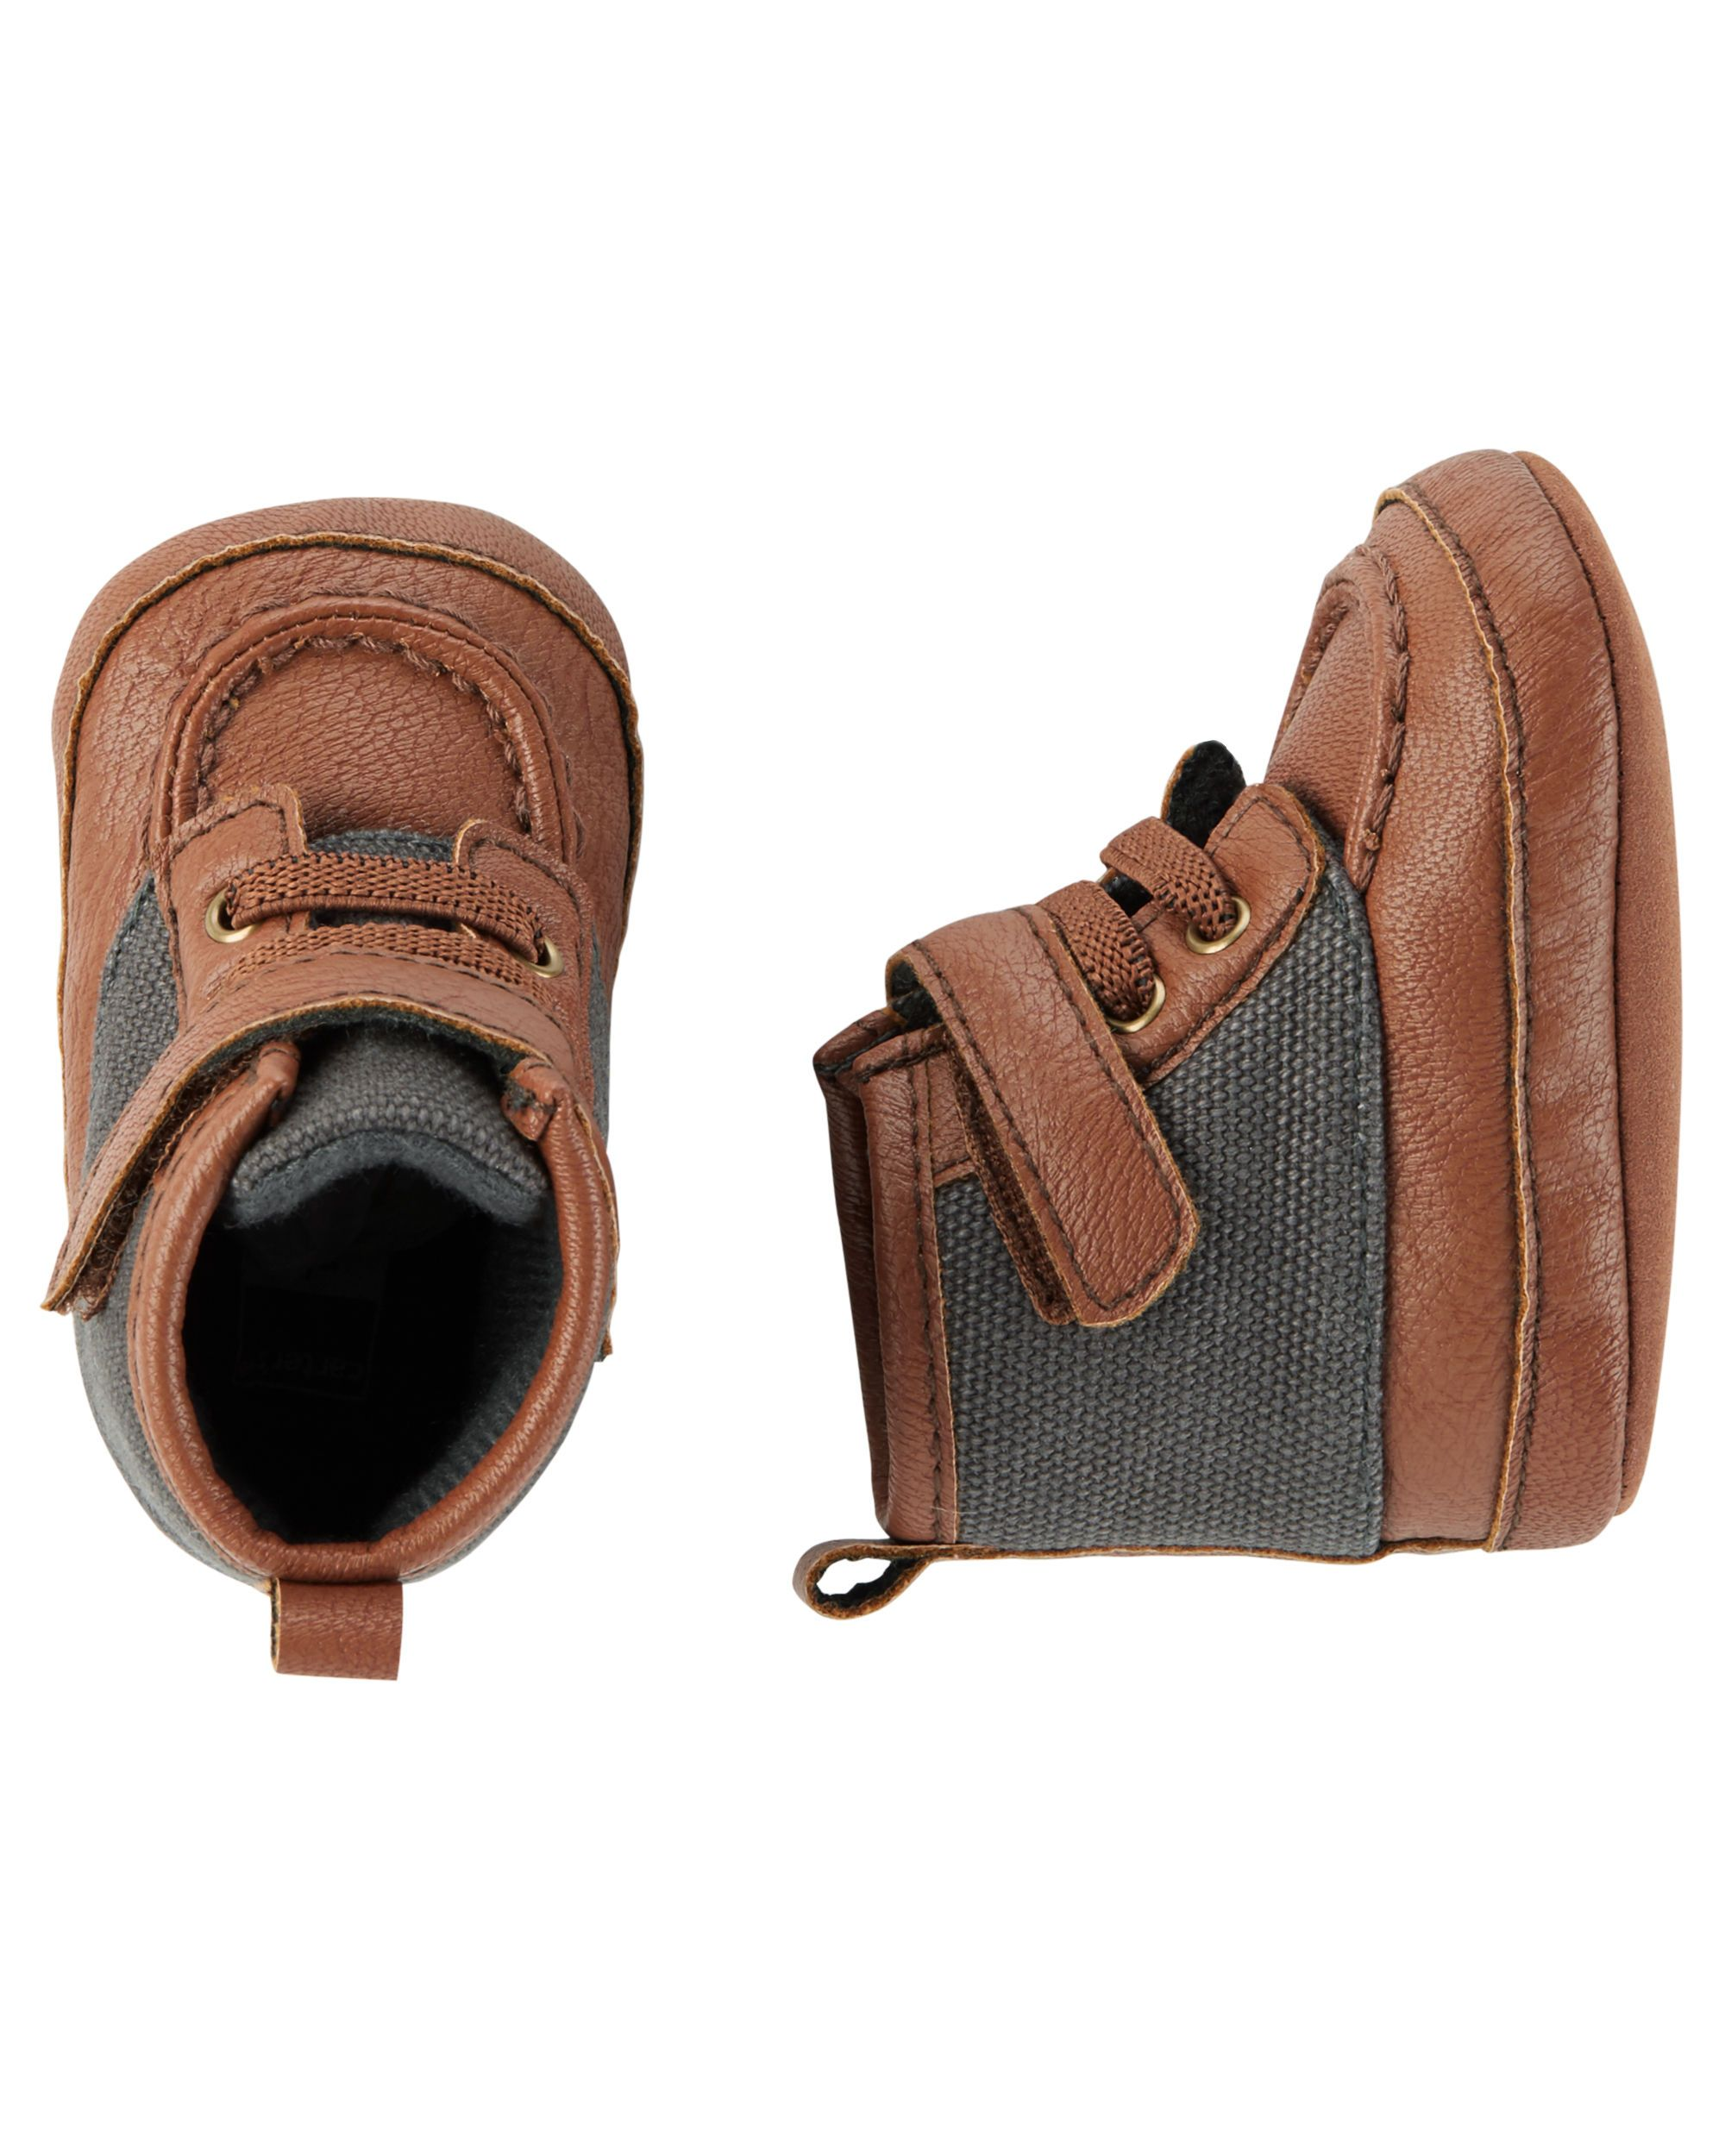 f9508c836 Baby Boy Hiking Boot Crib Shoes | Carter's OshKosh Canada | Snow ...